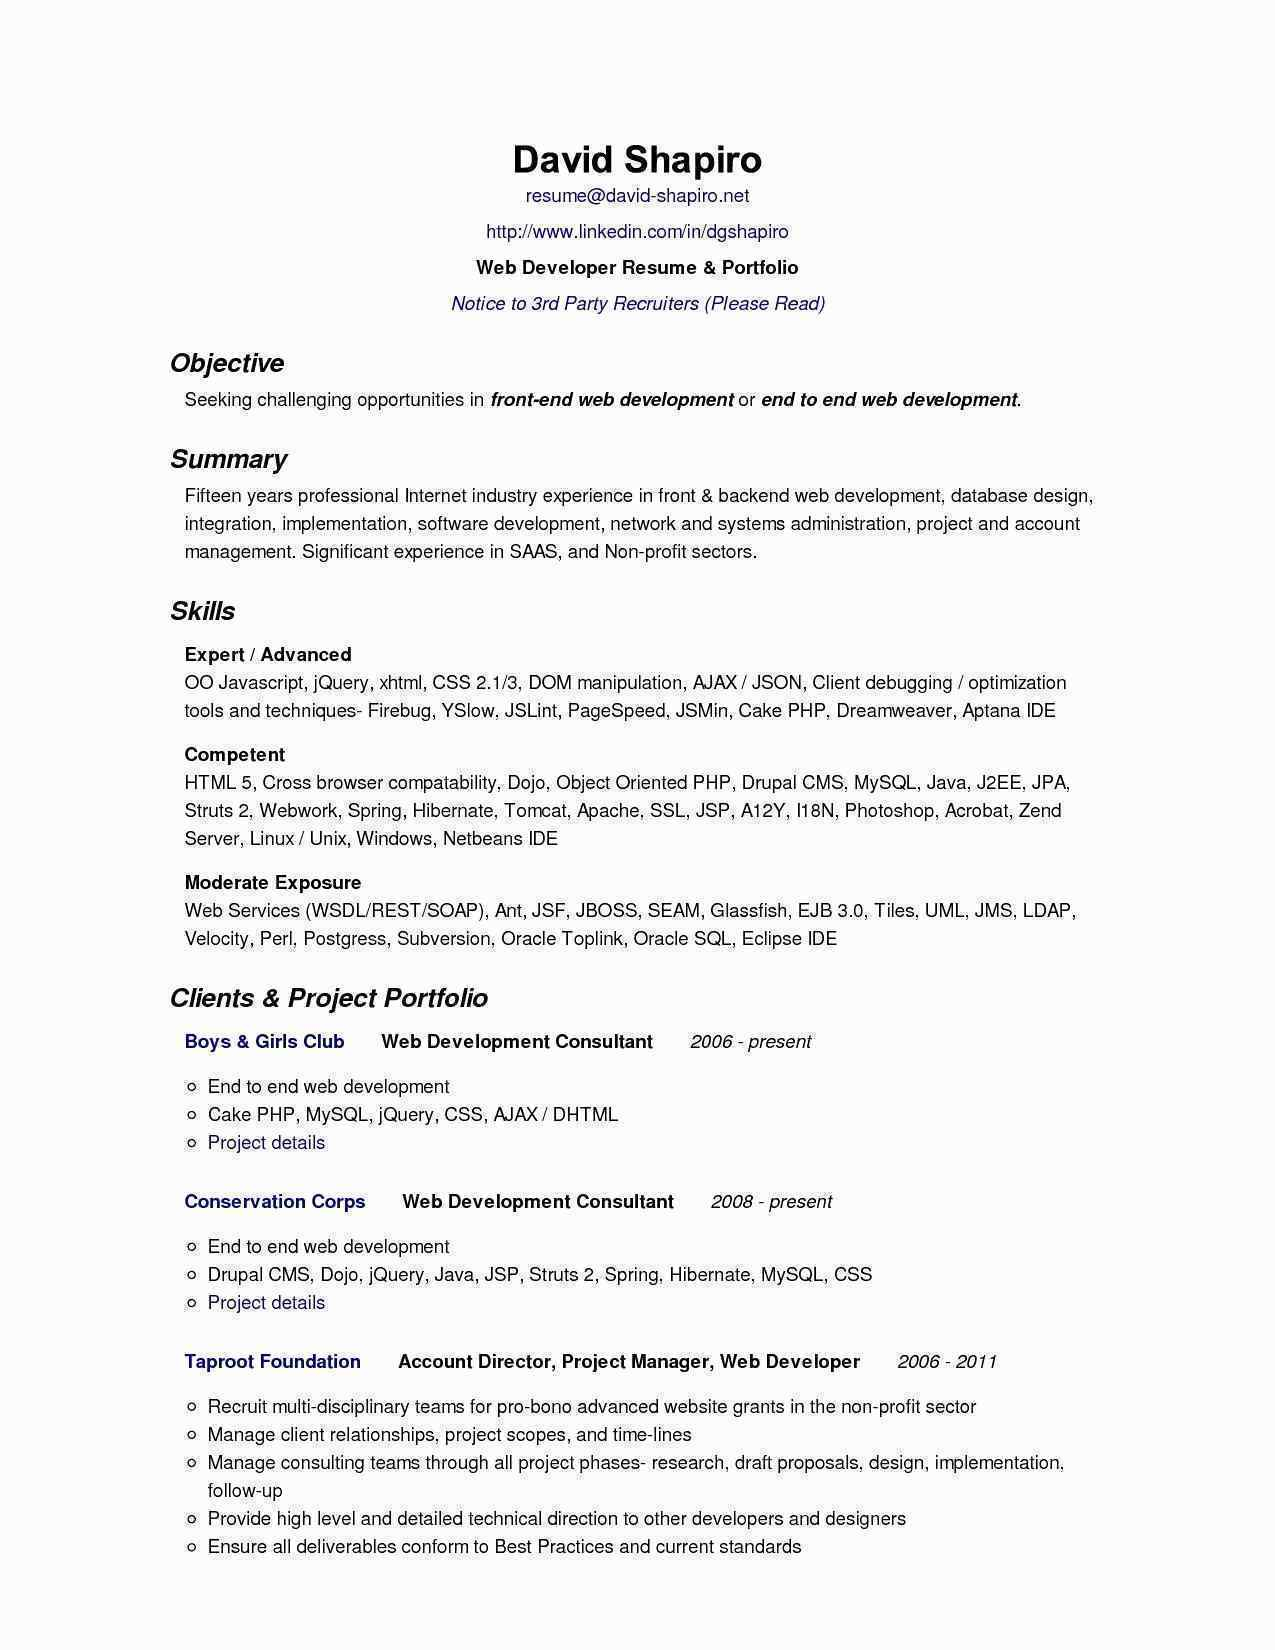 Apache Resume Template - Perl Resume Sample Elegant Perl Resume Sample Free Resume Templates